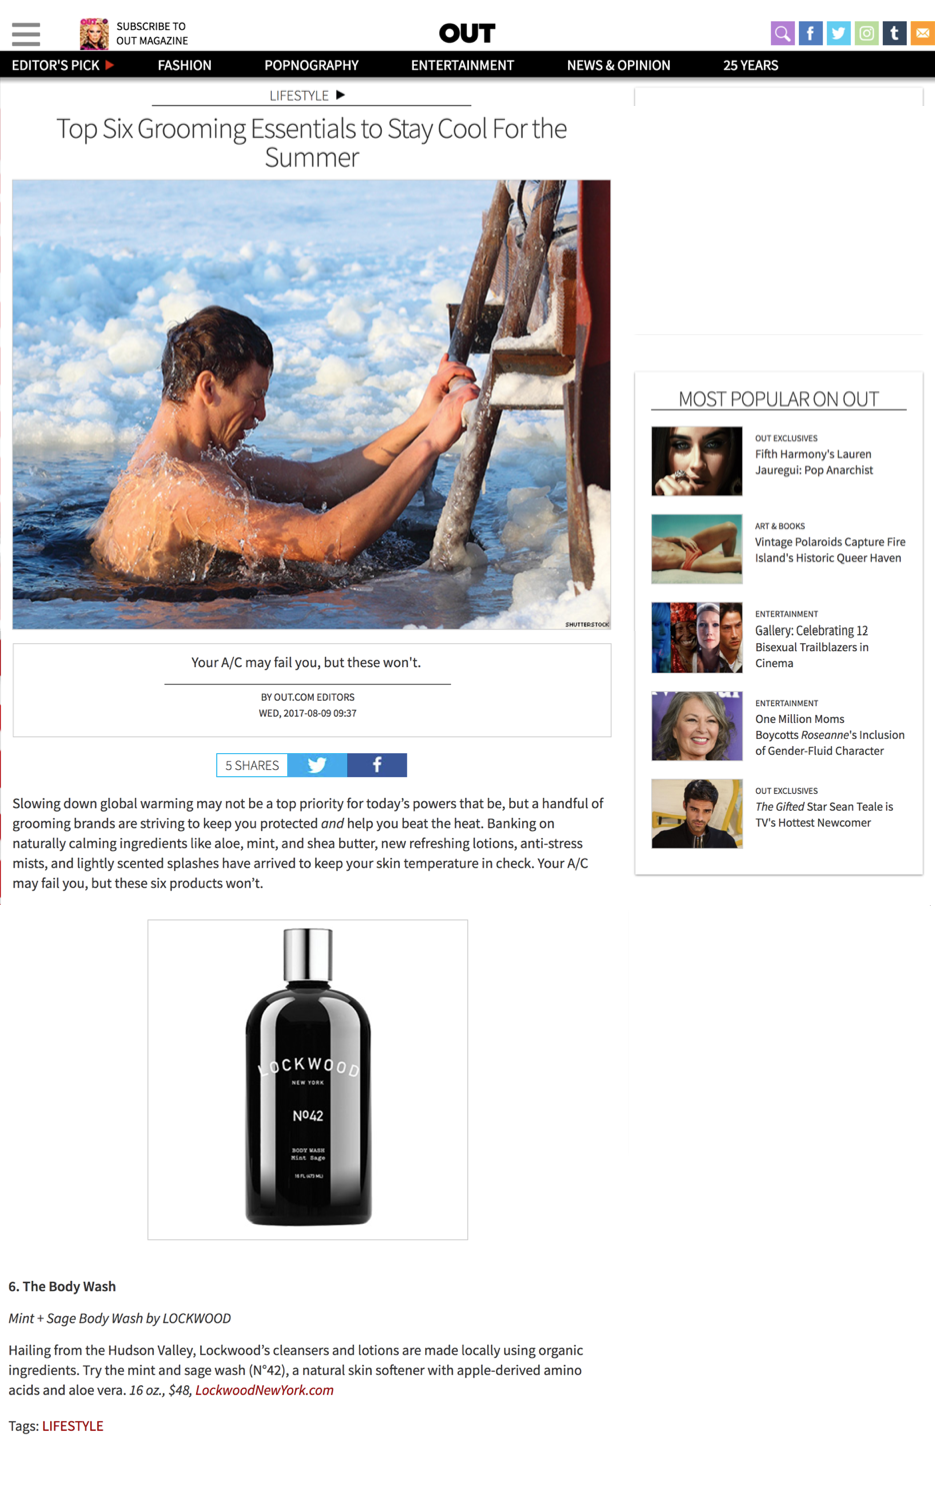 Out Magazine: Six Grooming Essentials